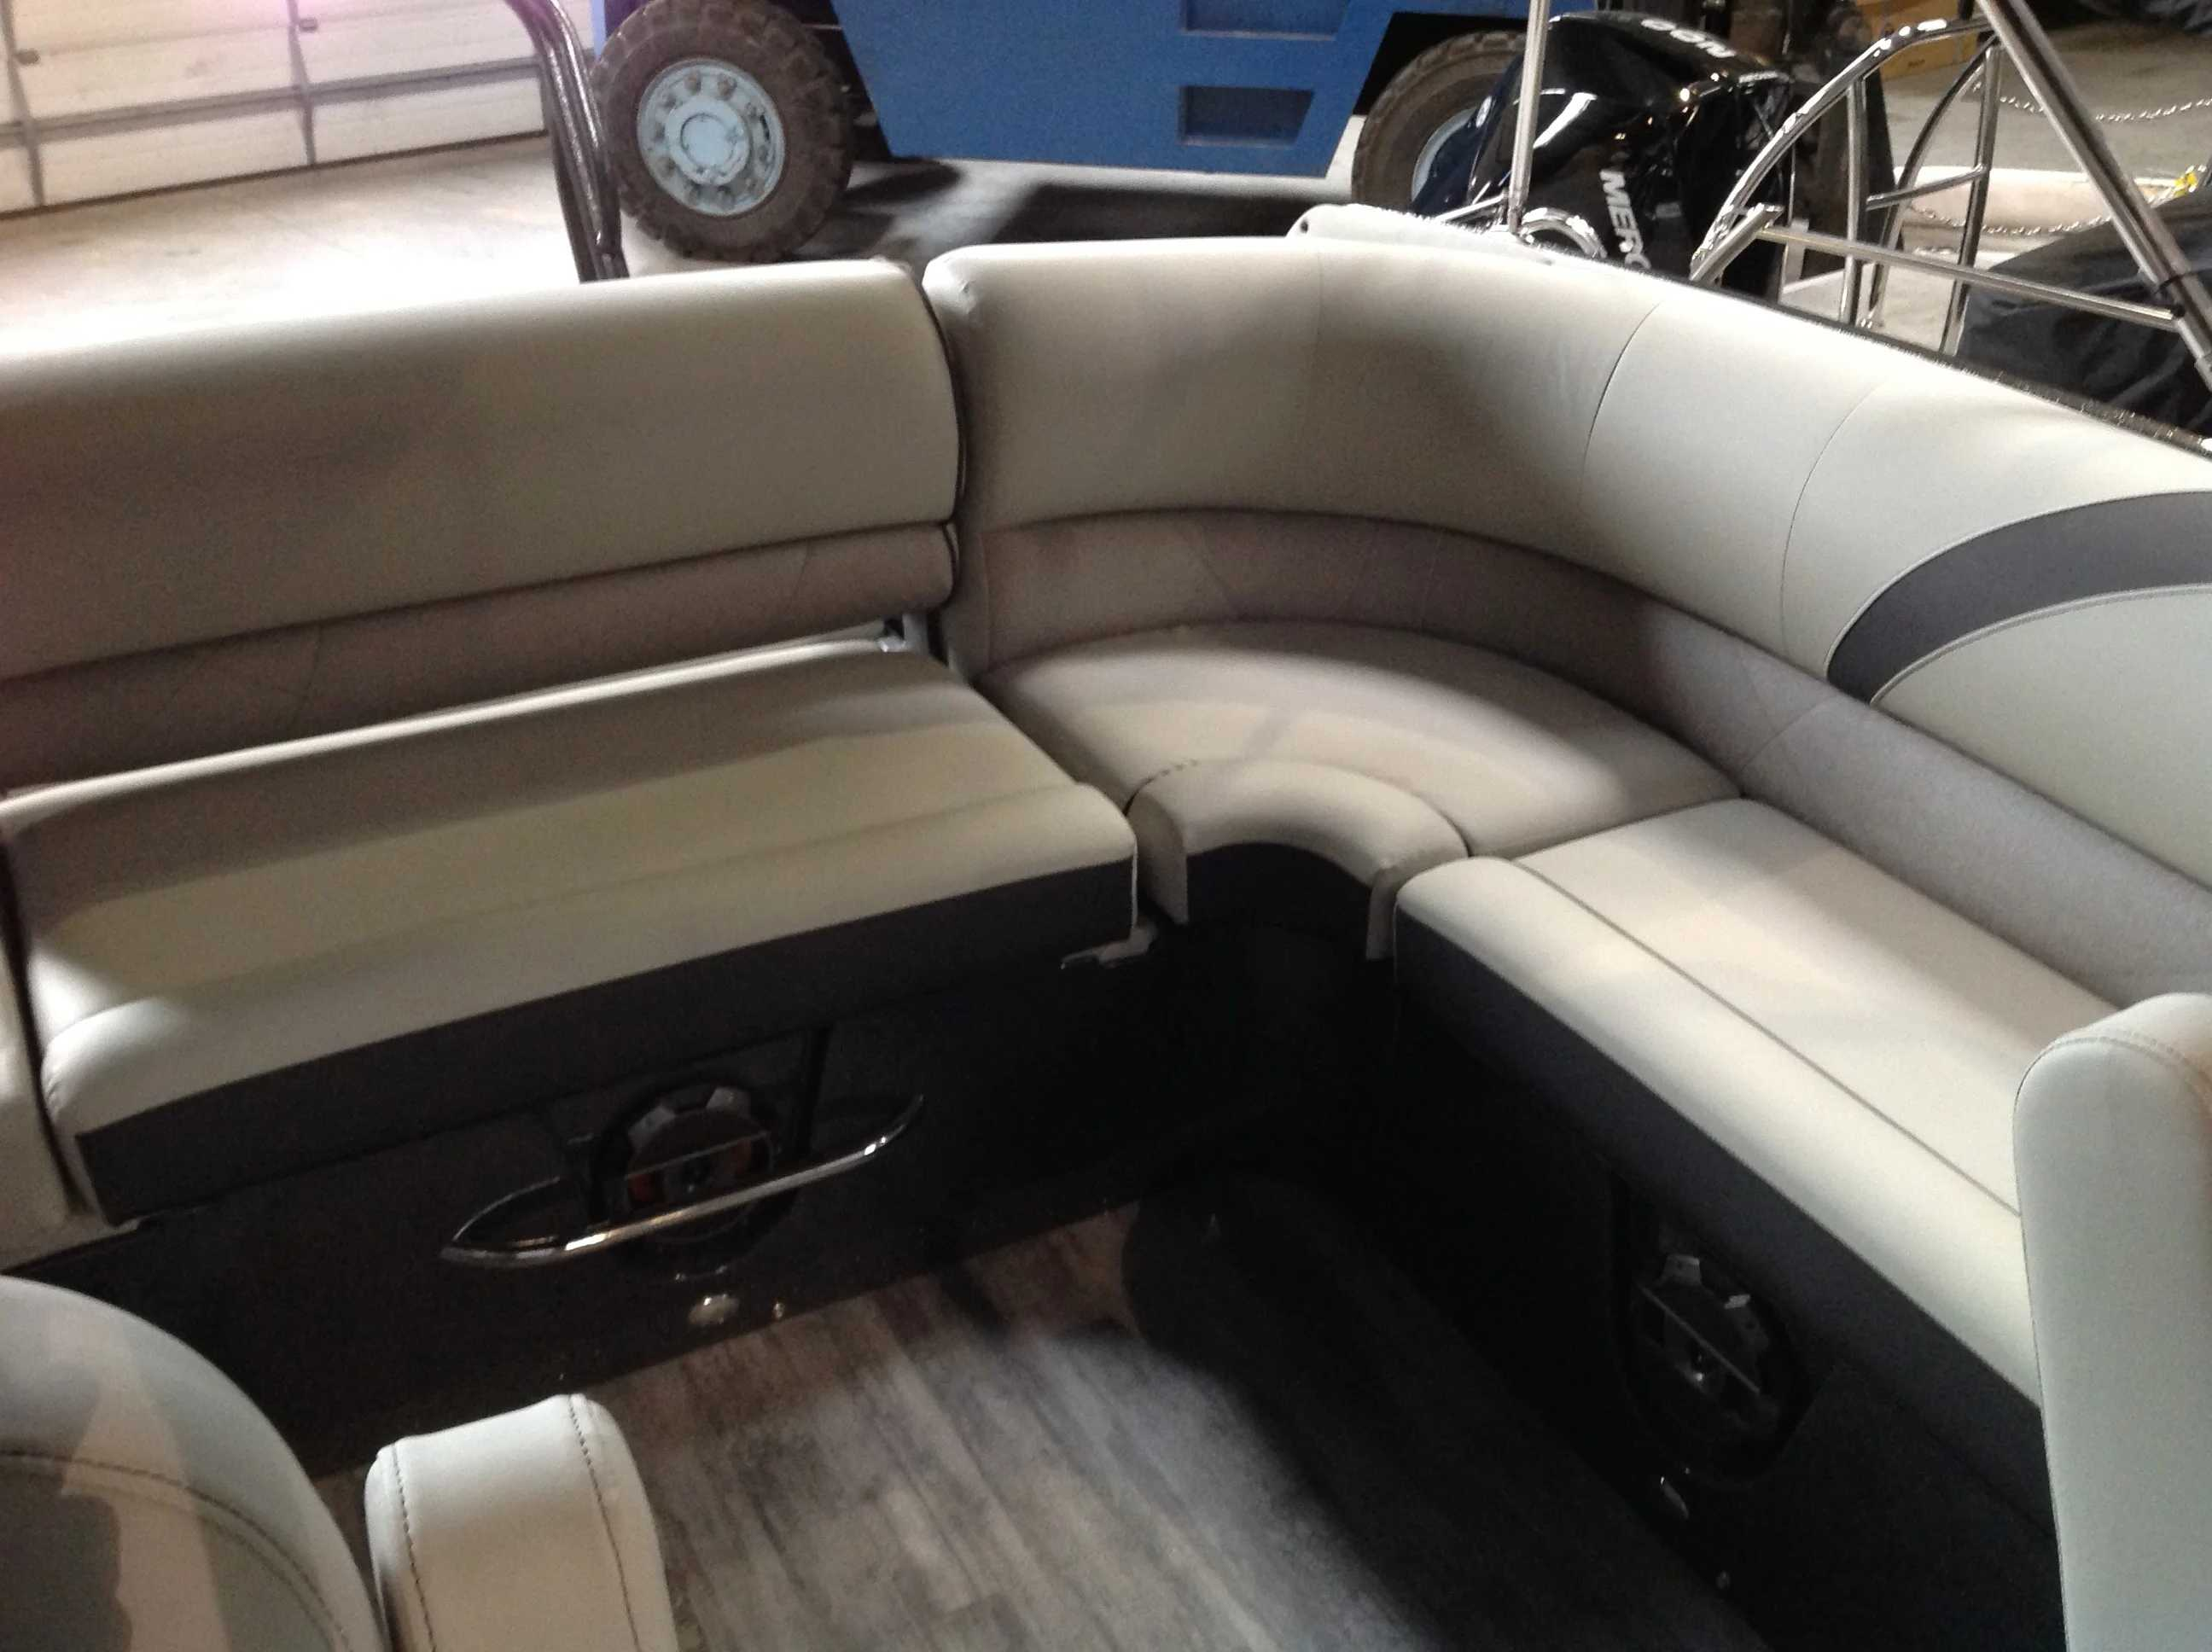 2021 Crest boat for sale, model of the boat is CONTINENTAL 250SLS & Image # 11 of 15